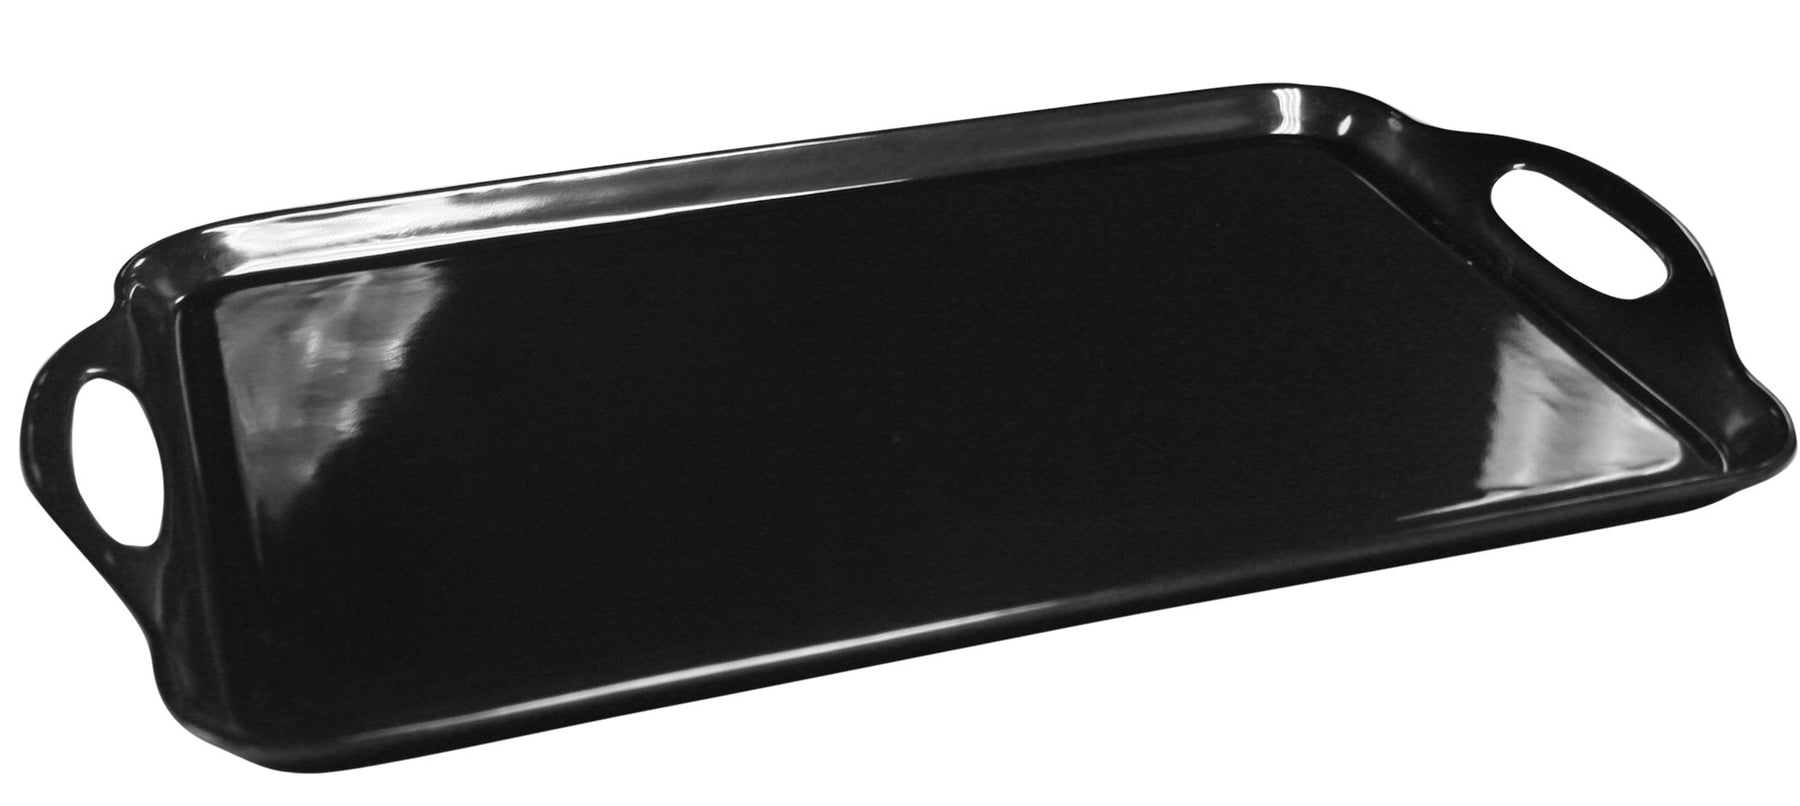 Black - Rectangular Tray